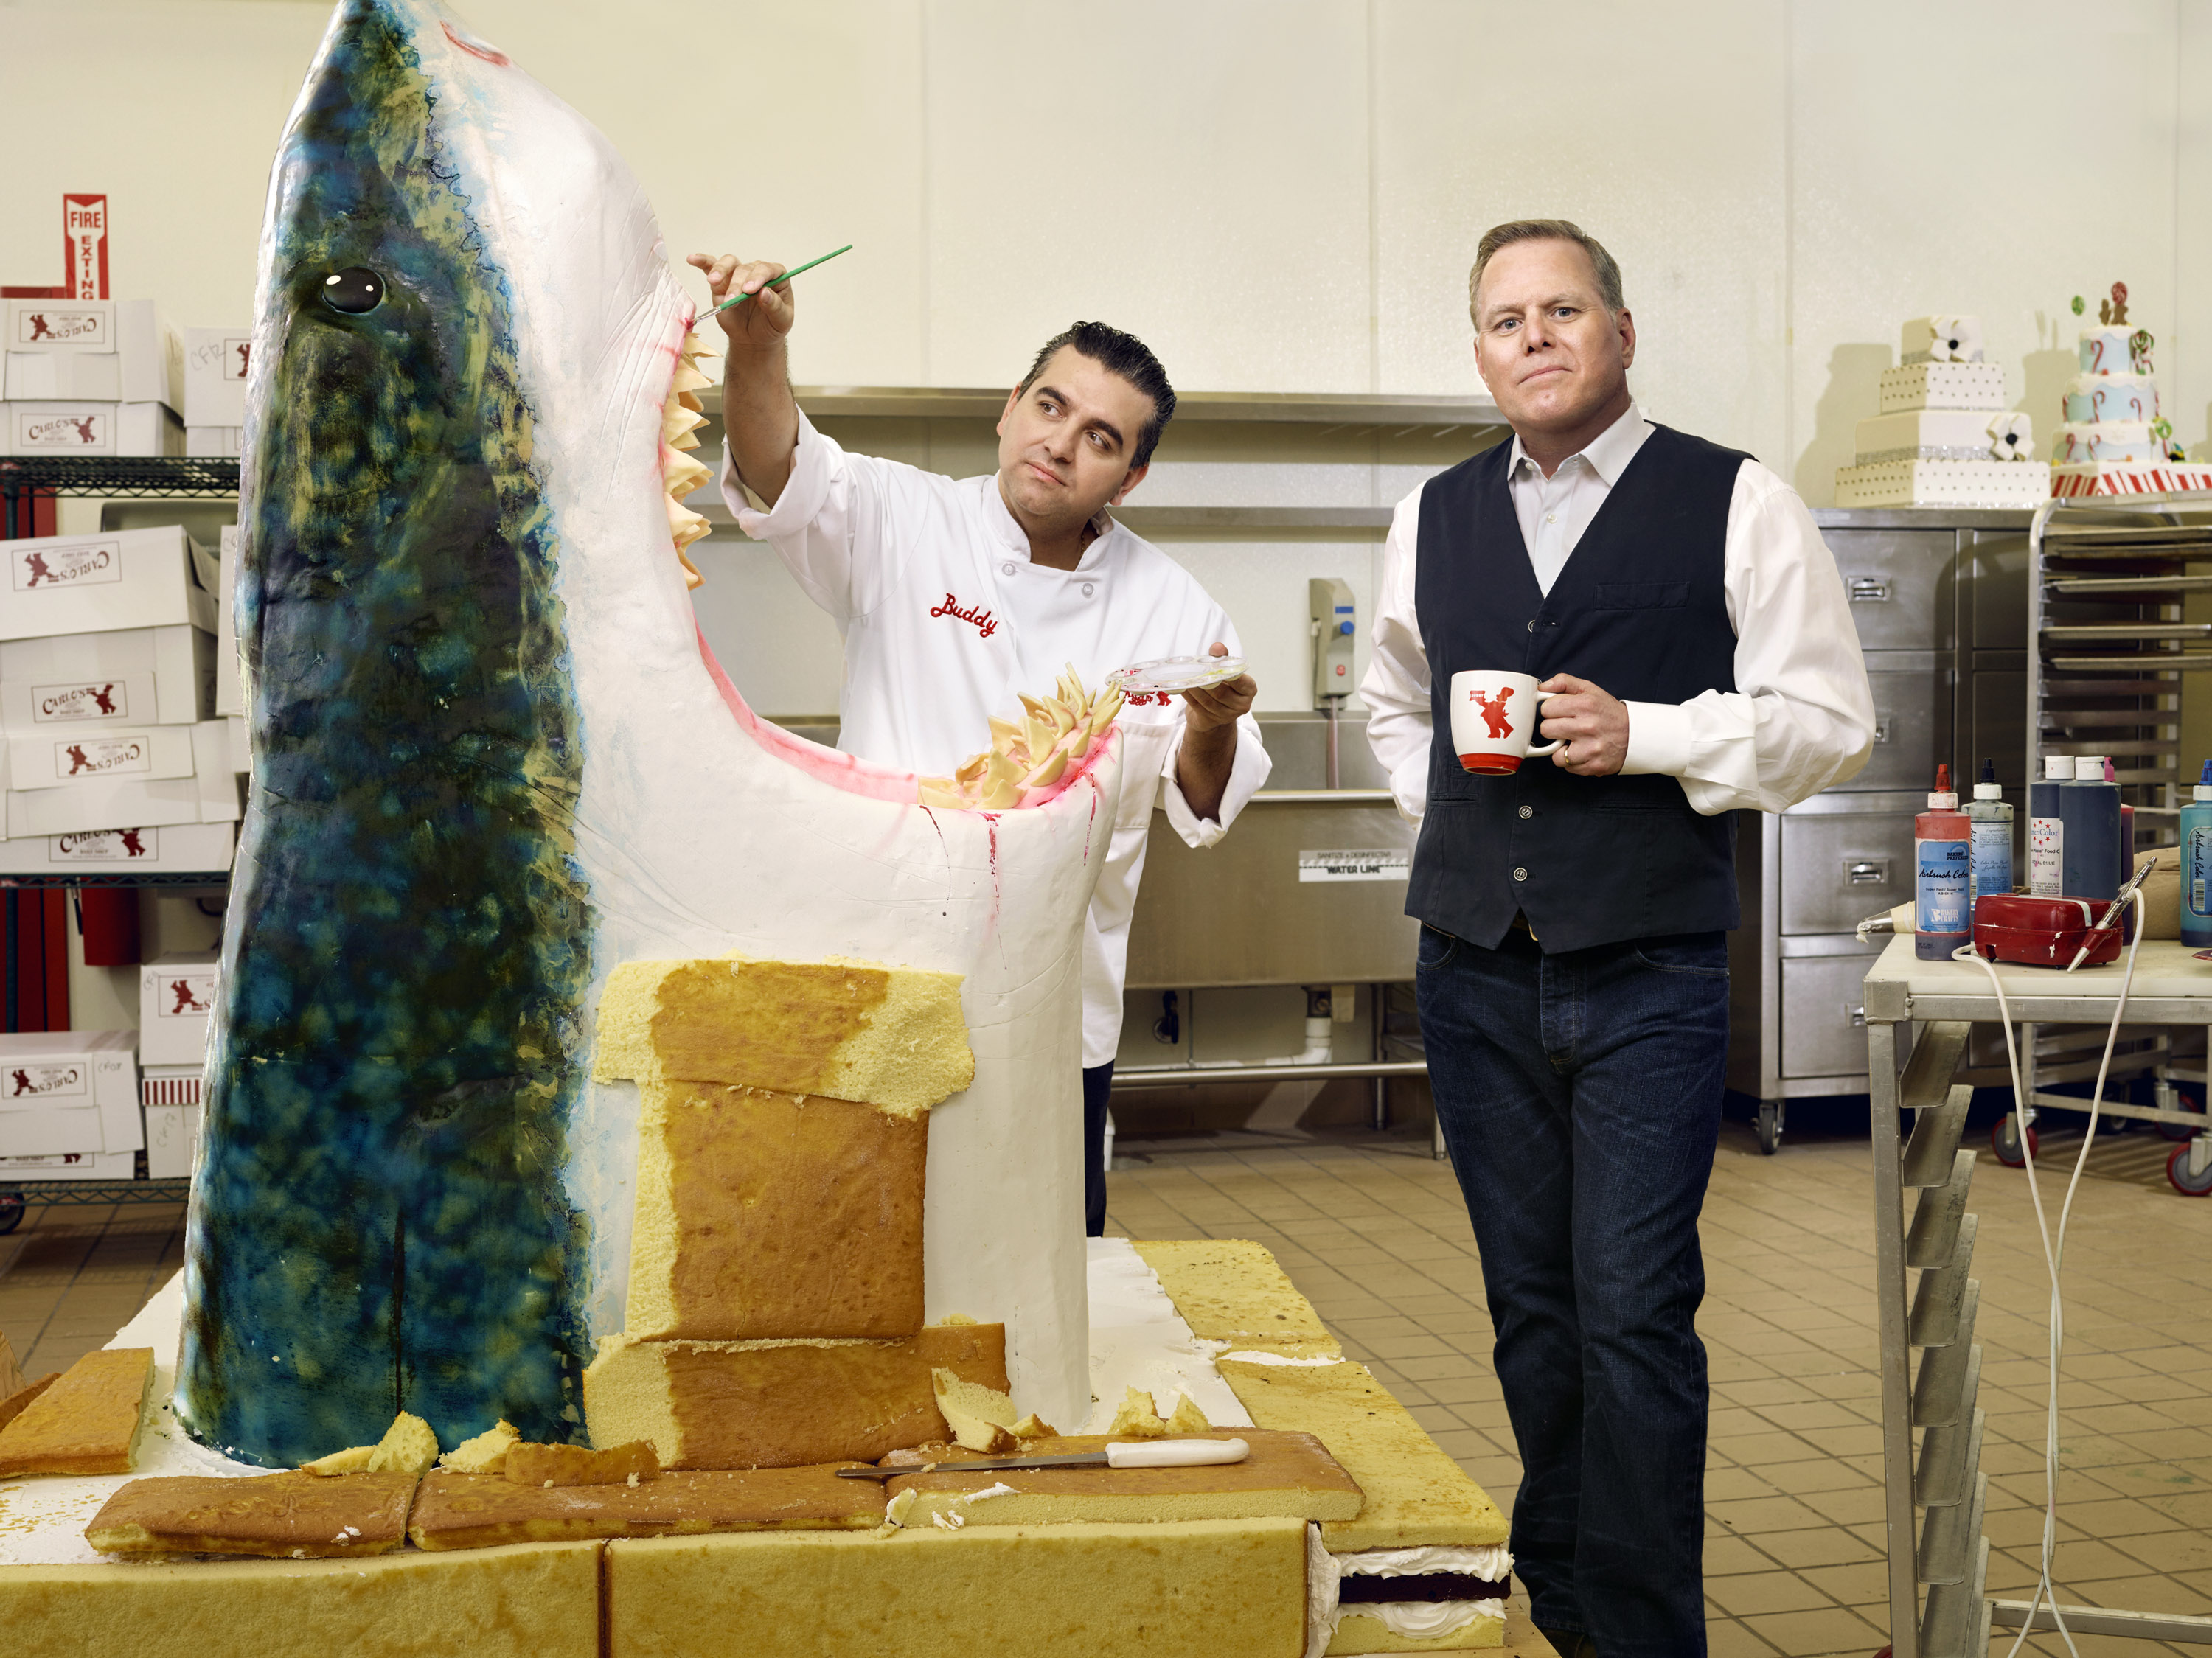 Cake Boss Buddy Valastro, left, and David Zaslav at a Carlo's bakery facility in Jersey City, N.J.